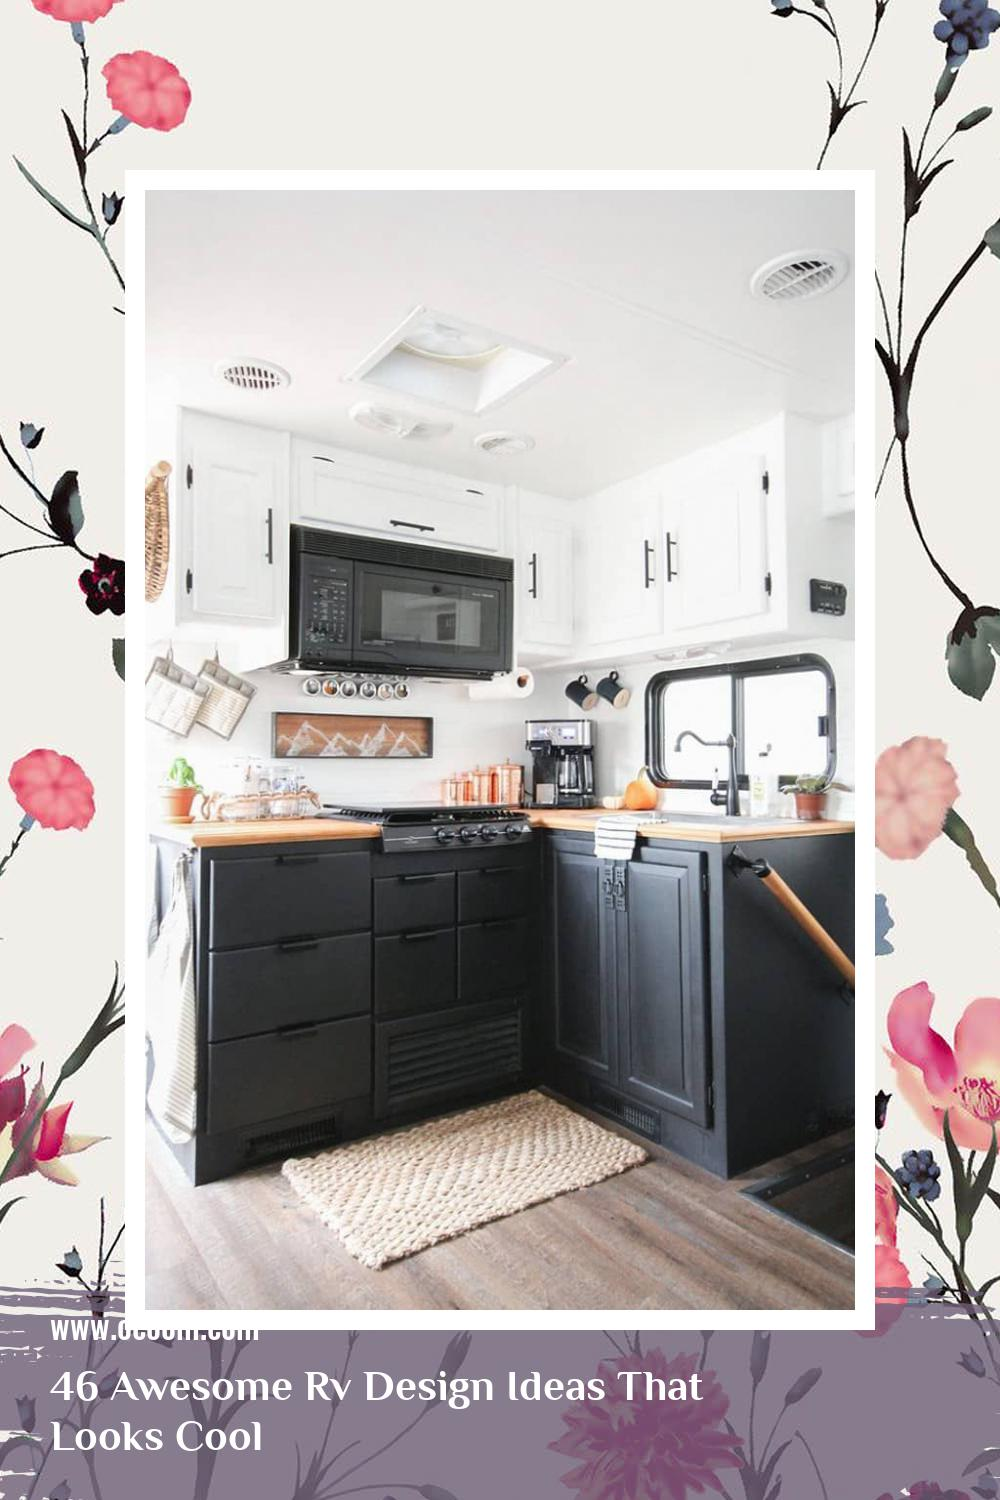 46 Awesome Rv Design Ideas That Looks Cool 32